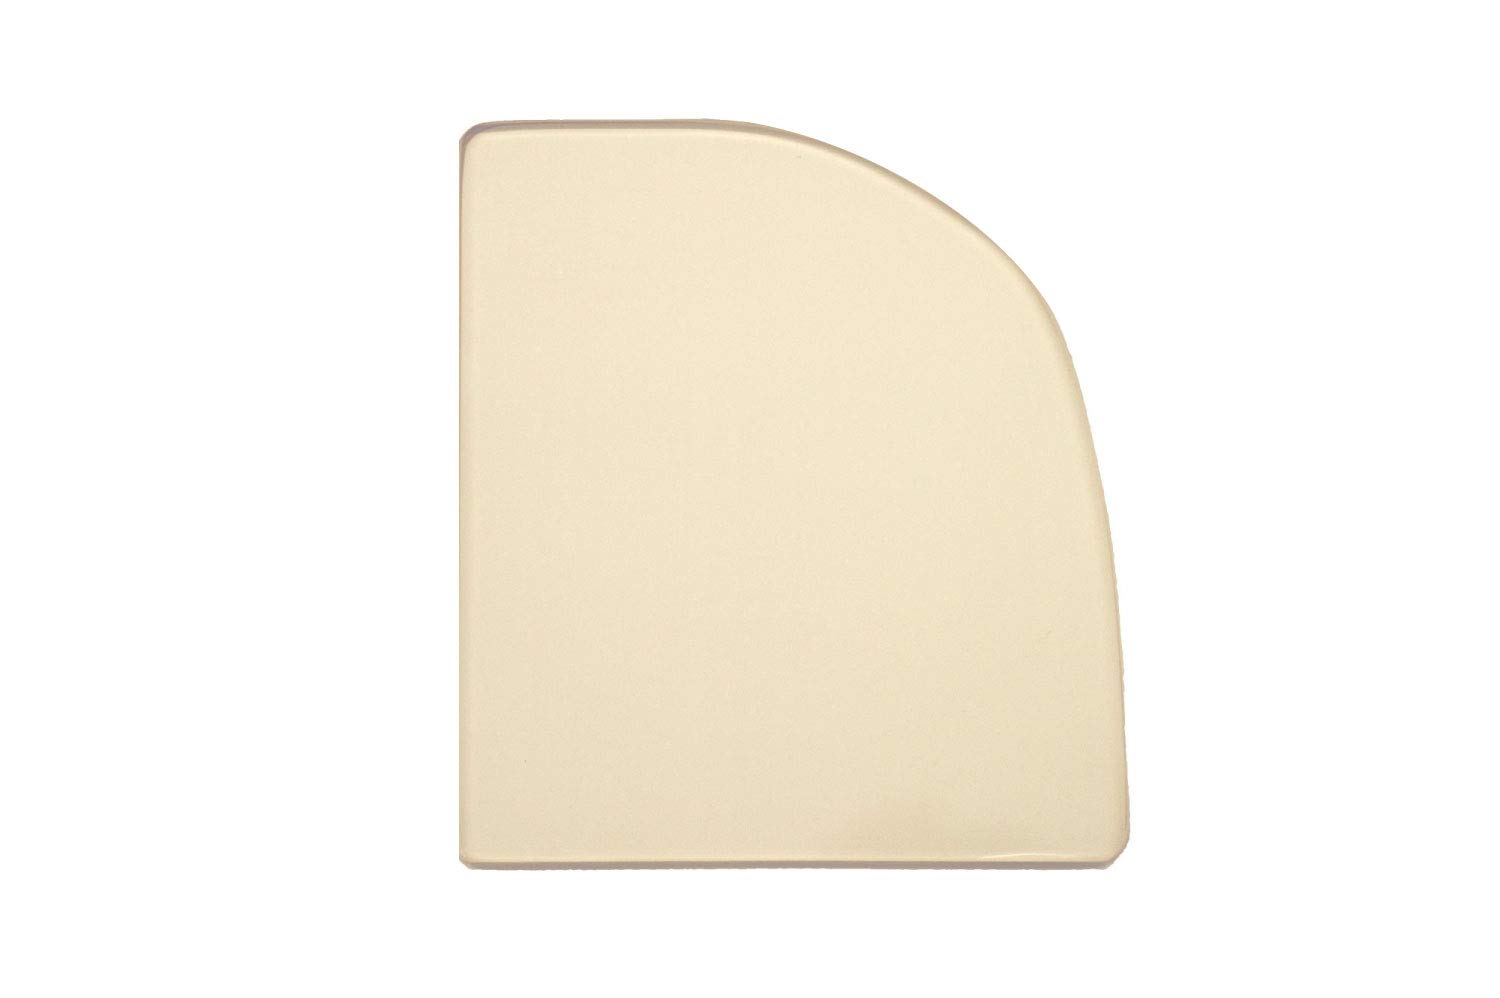 Vermont Castings Door Glass (Intrepid I, 1302, 1303, Resolute III) by Vermont Castings